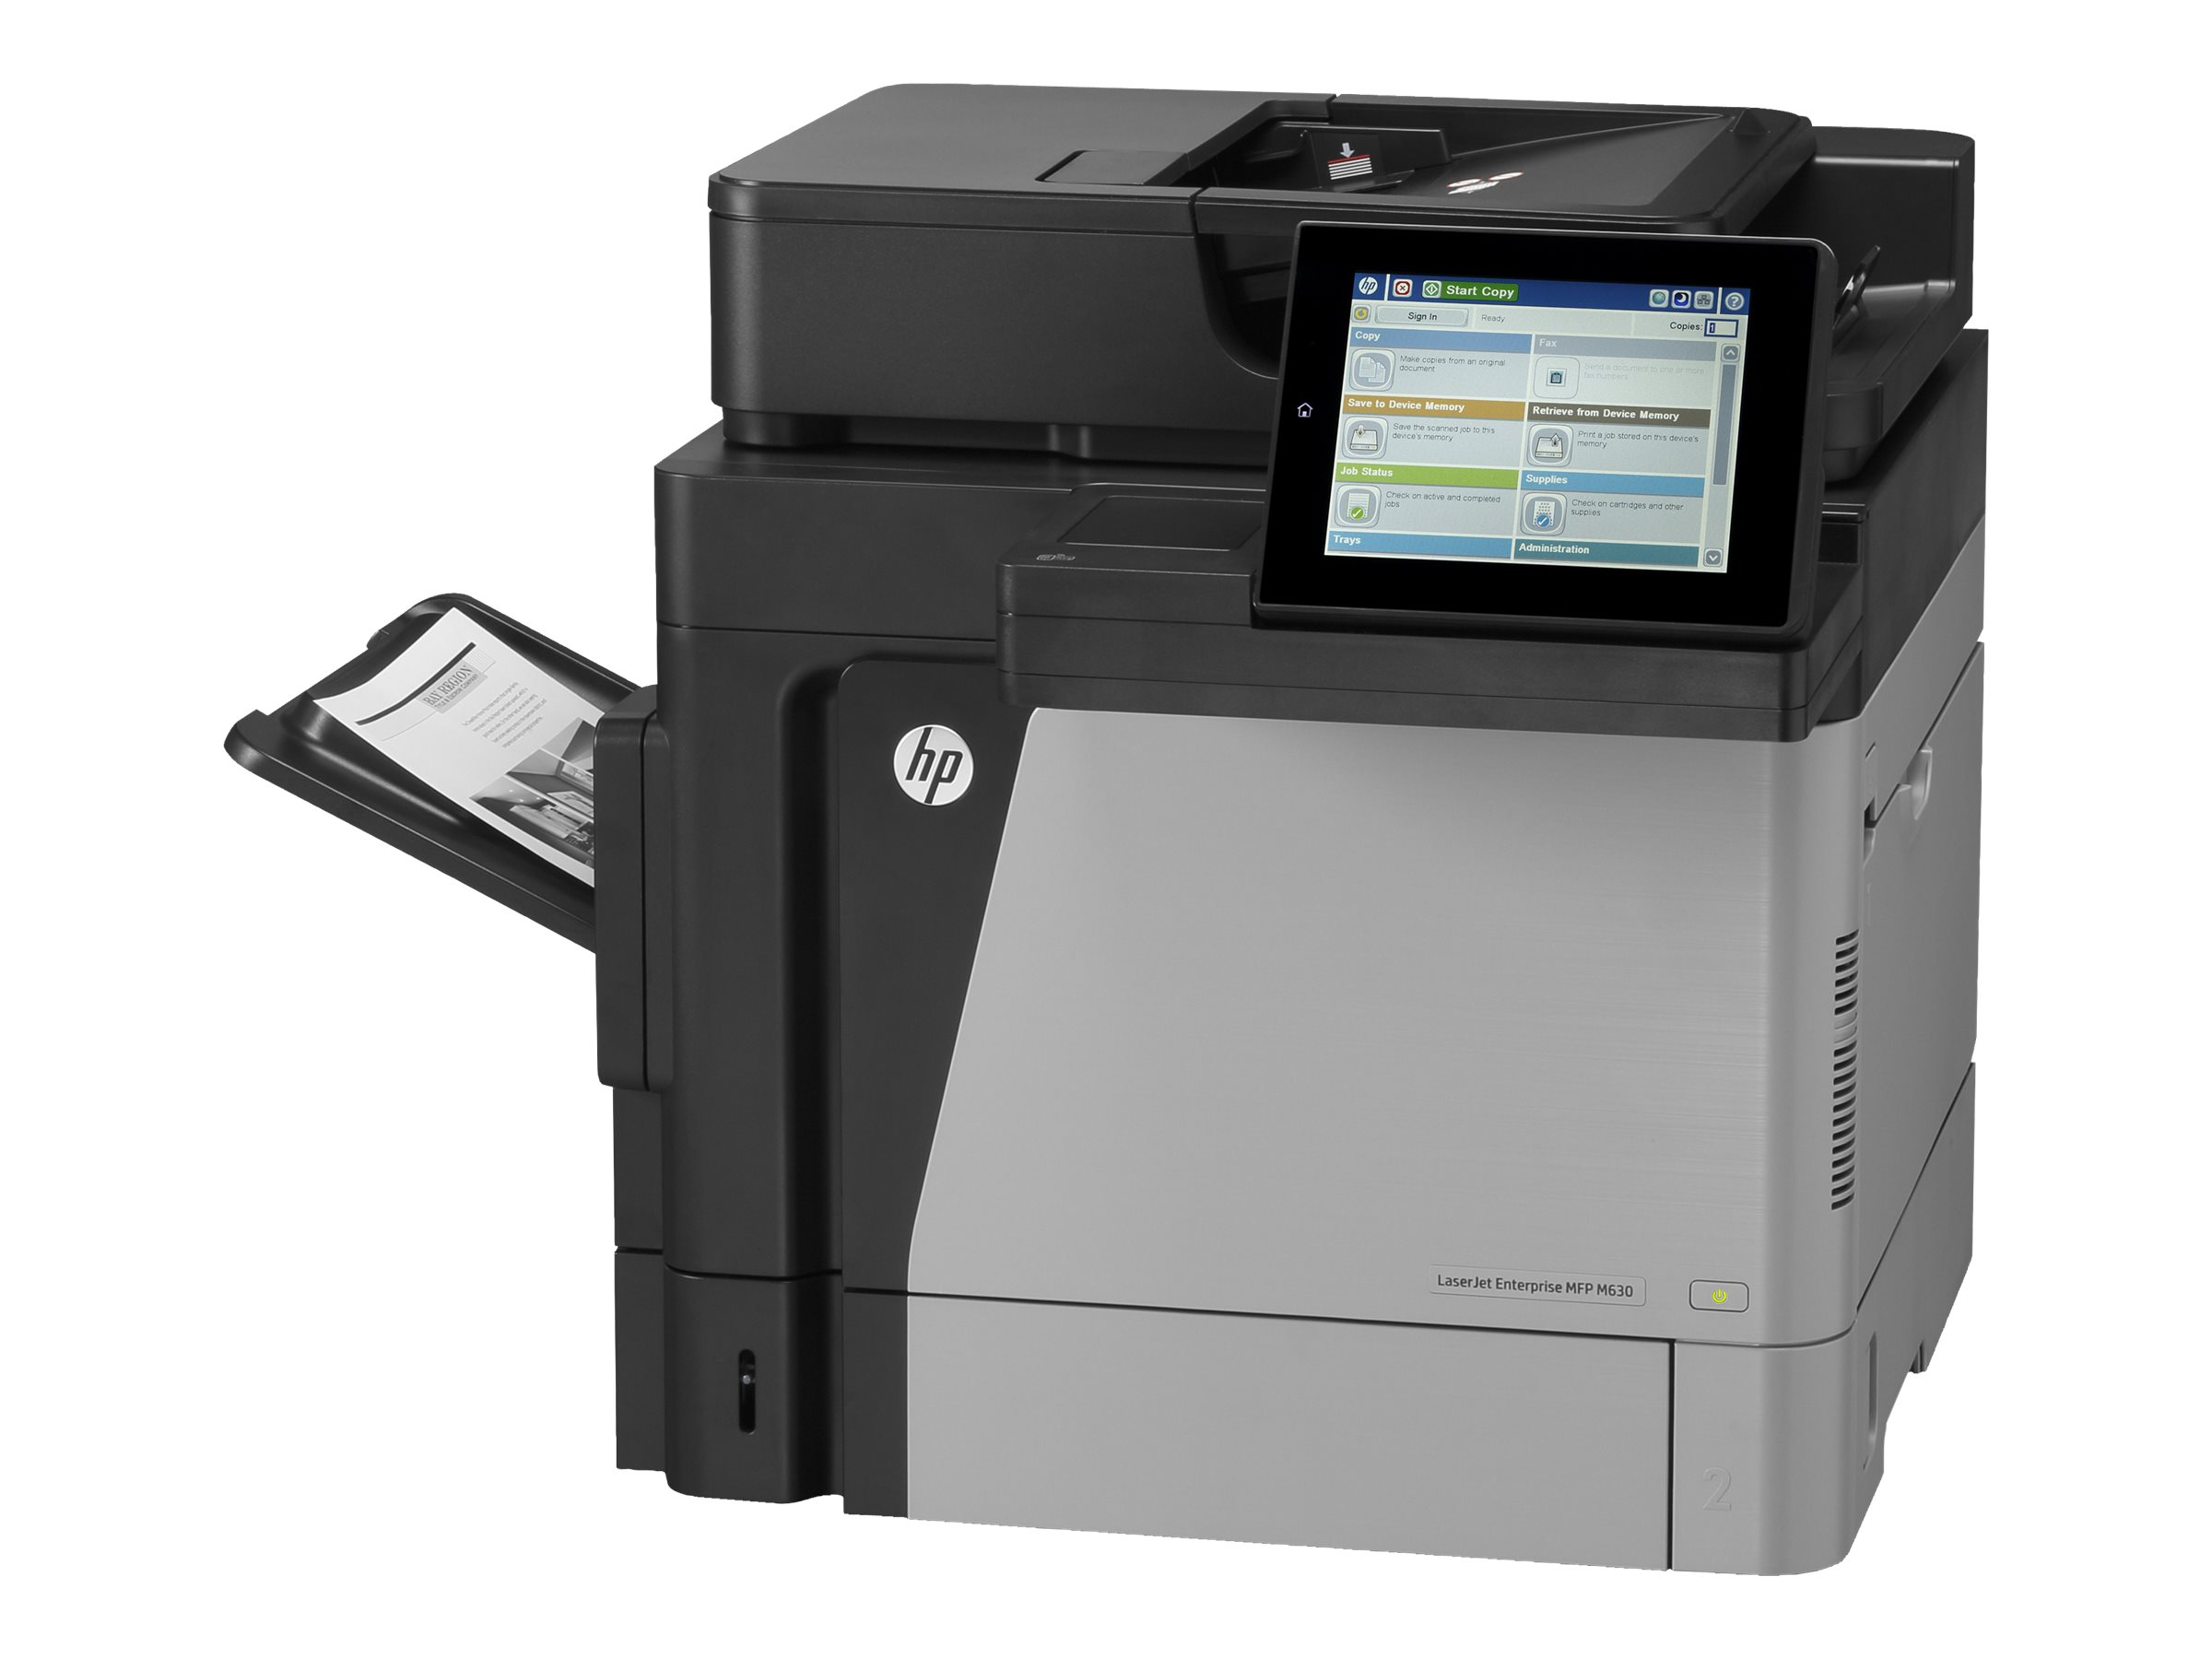 HP LaserJet Enterprise MFP M630dn - Multifunktionsdrucker - s/w - Laser - Legal (216 x 356 mm) (Original) - A4/Legal (Medien)